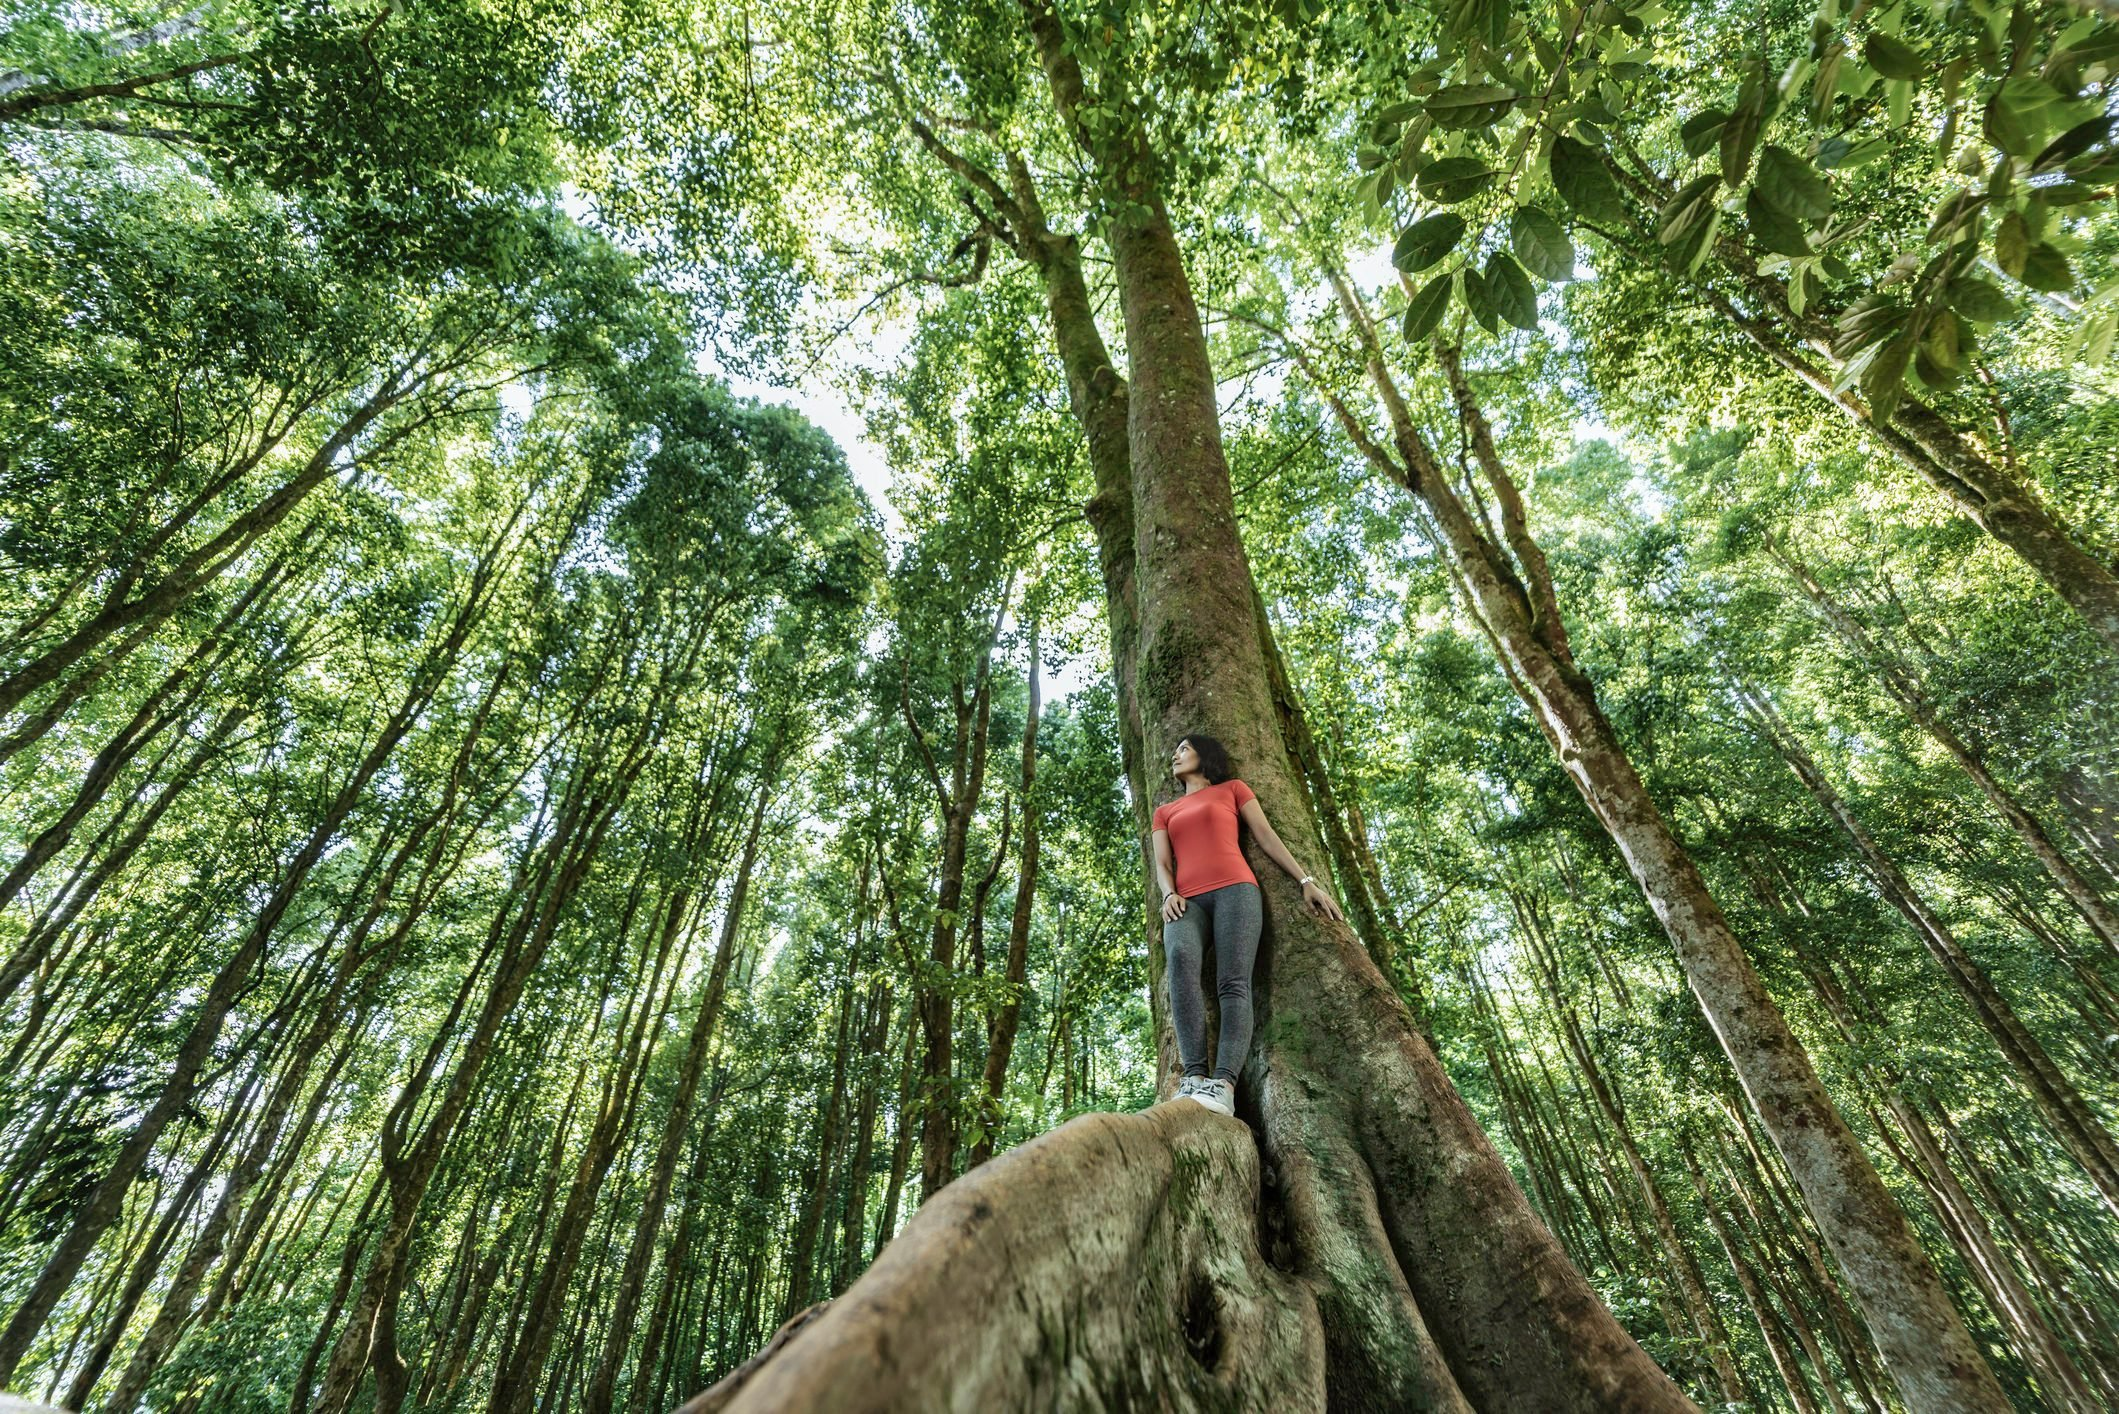 Young Asian woman standing on tropical in tropical rainforest setting